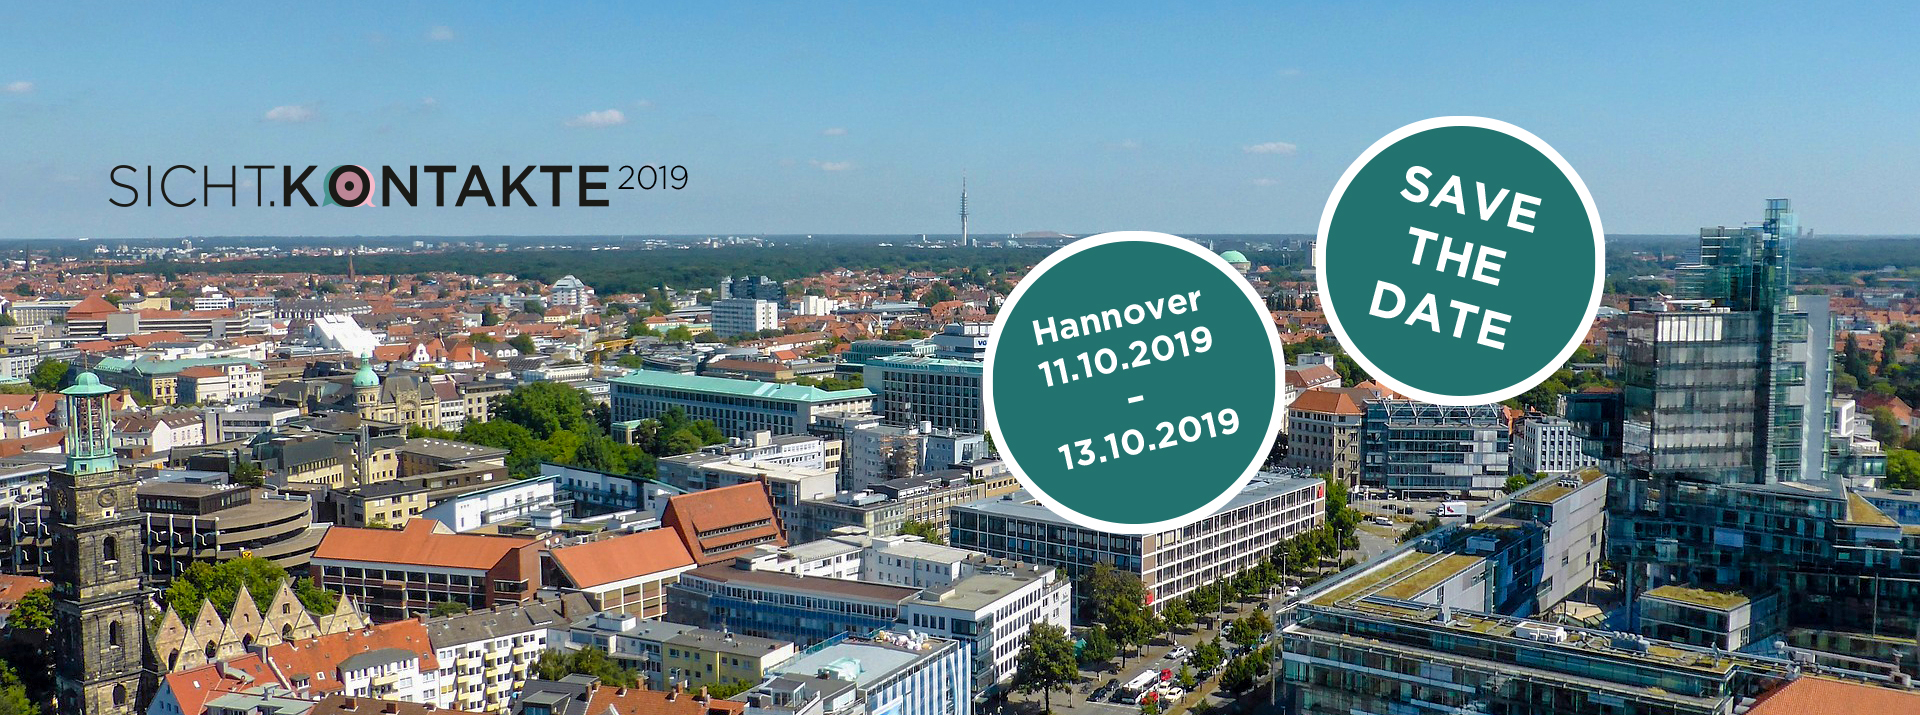 SICHT.KONTAKTE 2019 in Hannover, Save the Date